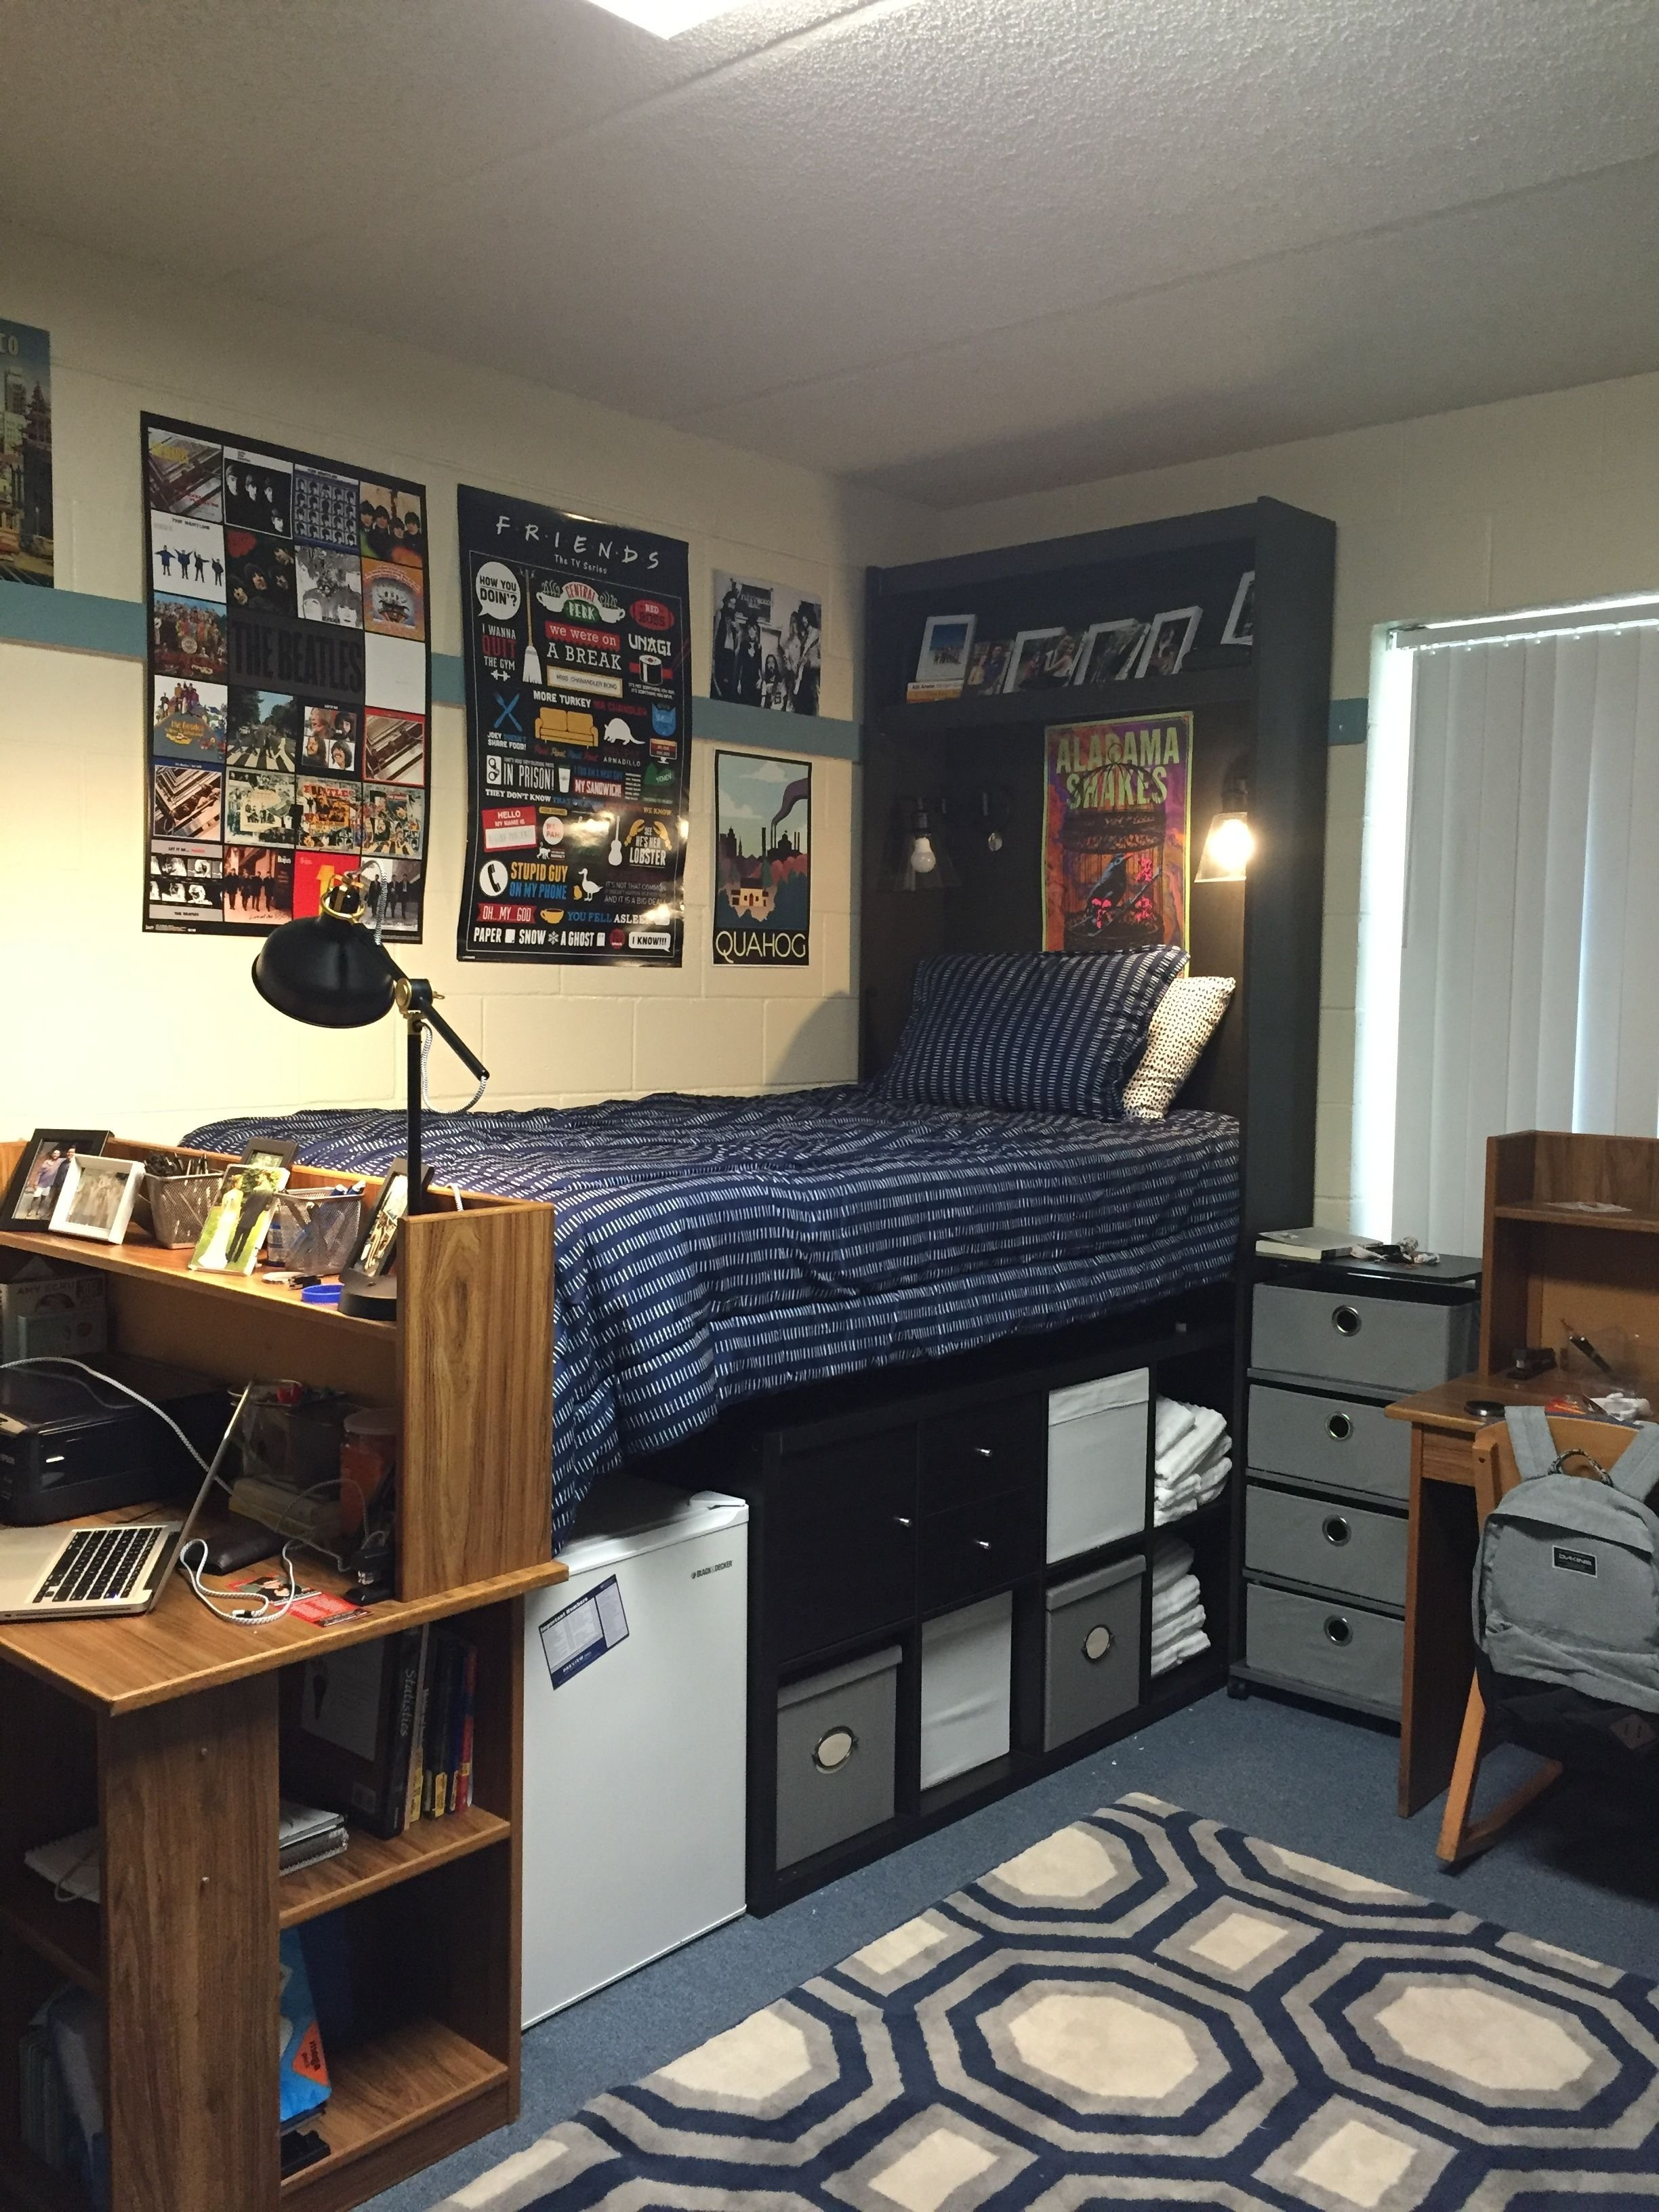 10 Fantastic Cool Dorm Room Ideas For Guys connors dorm university of florida teen girl bedroom ideas 1 2020